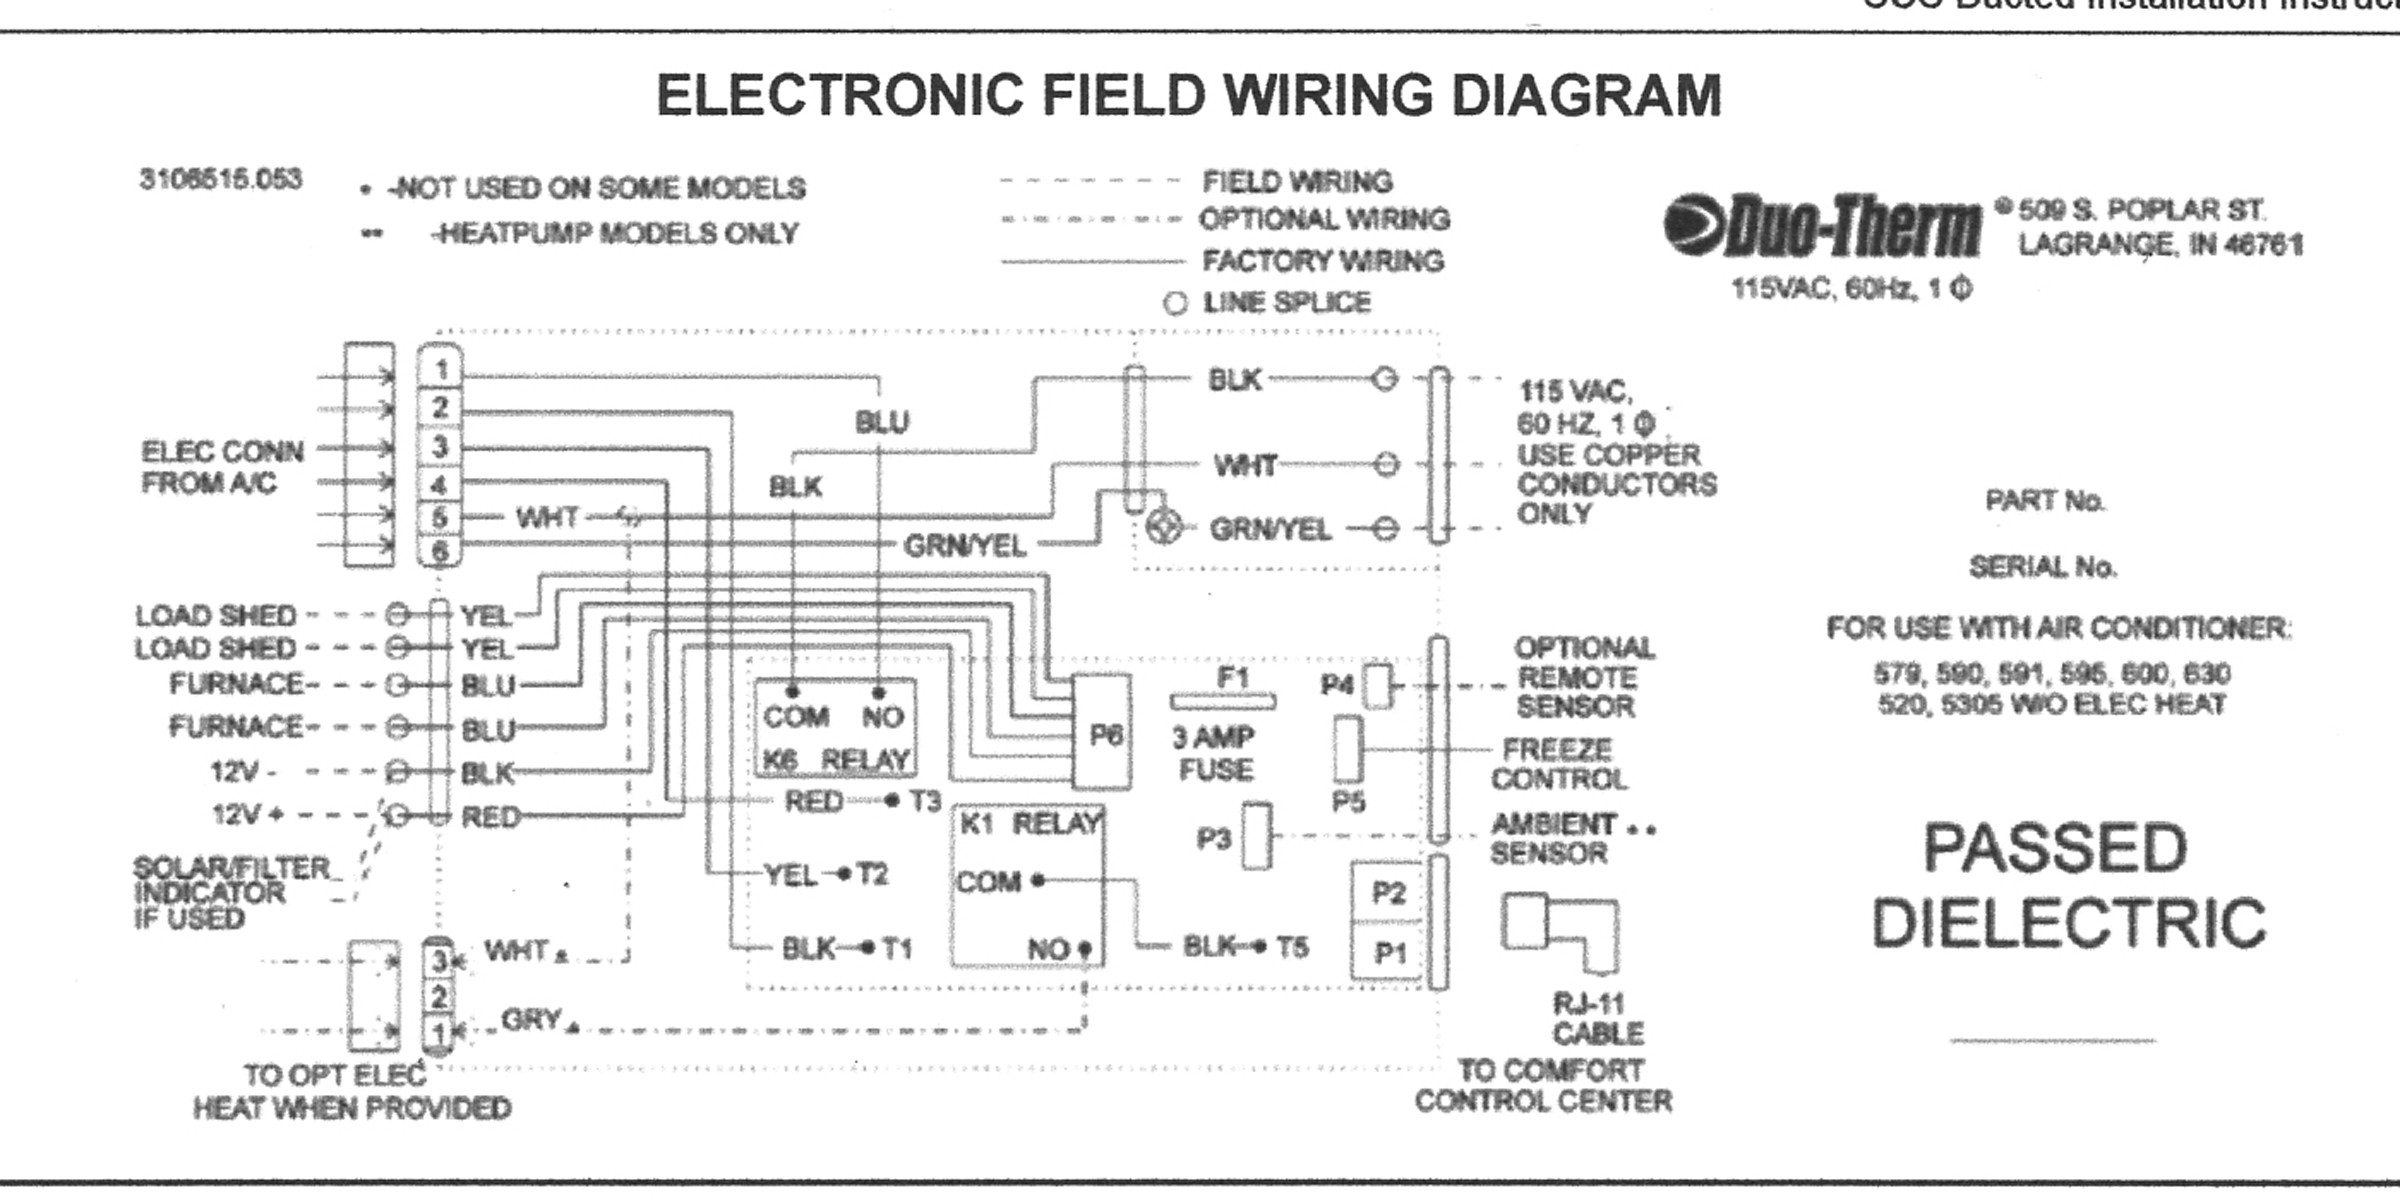 duo therm thermostat wiring diagram duo therm rv thermostat wiring diagram duo therm thermostat wiring diagram collection #9